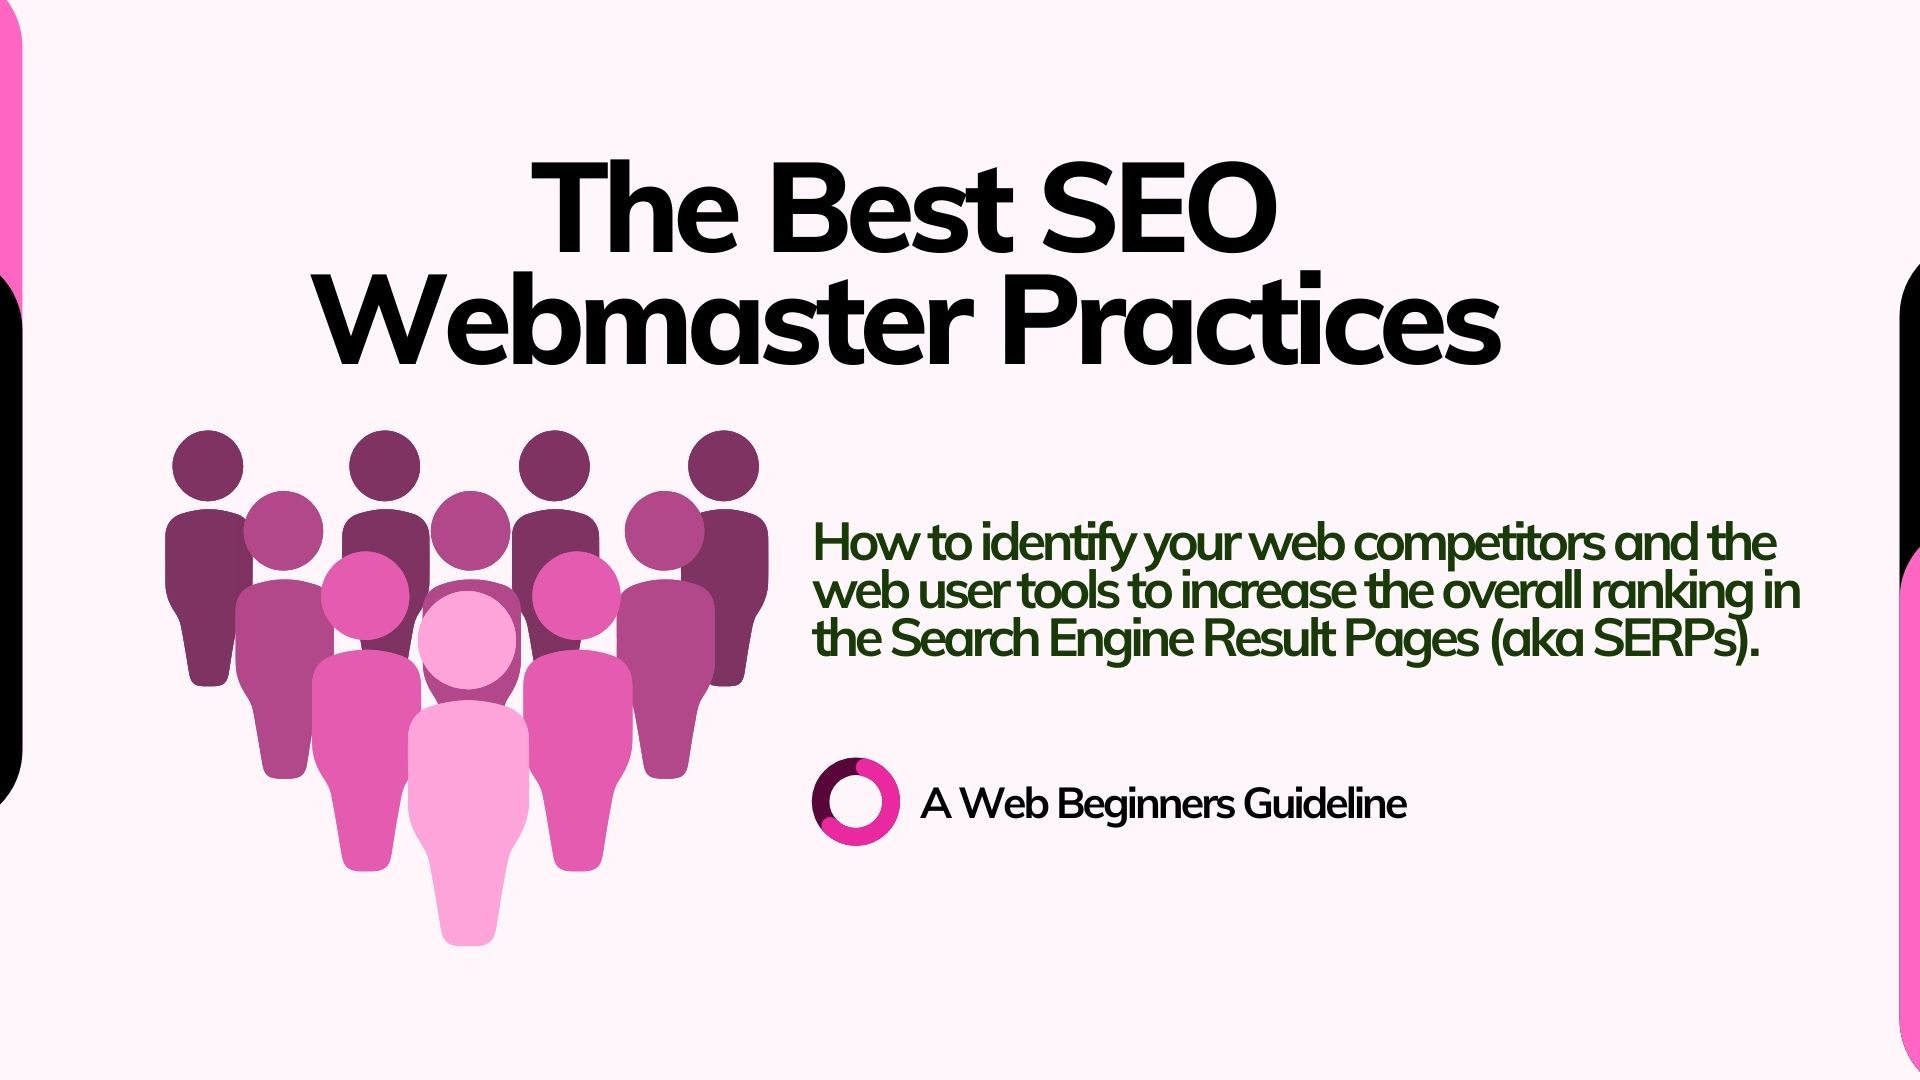 Why are SEO Best Practices important?